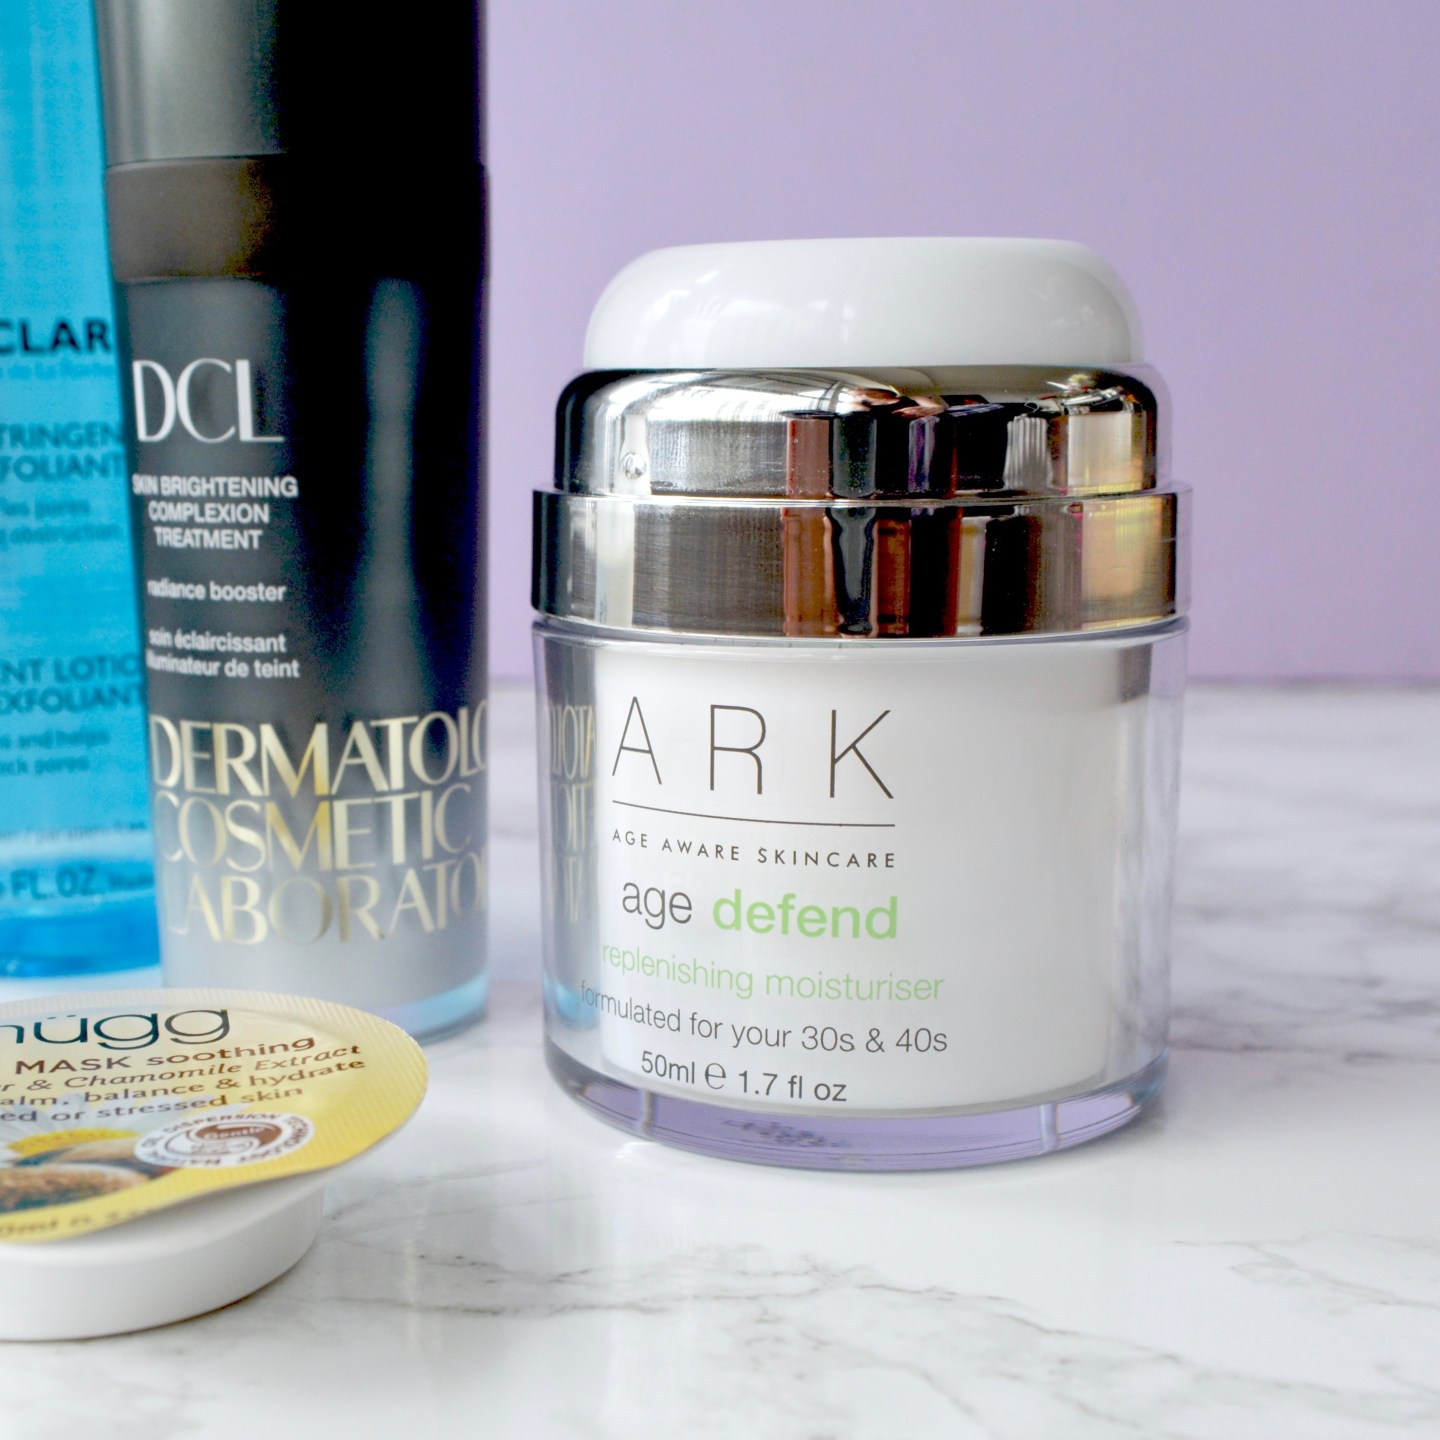 Skincare Shake Up: ARK age defend moisturiser. Great recommendations for rosacea/sensitive skin